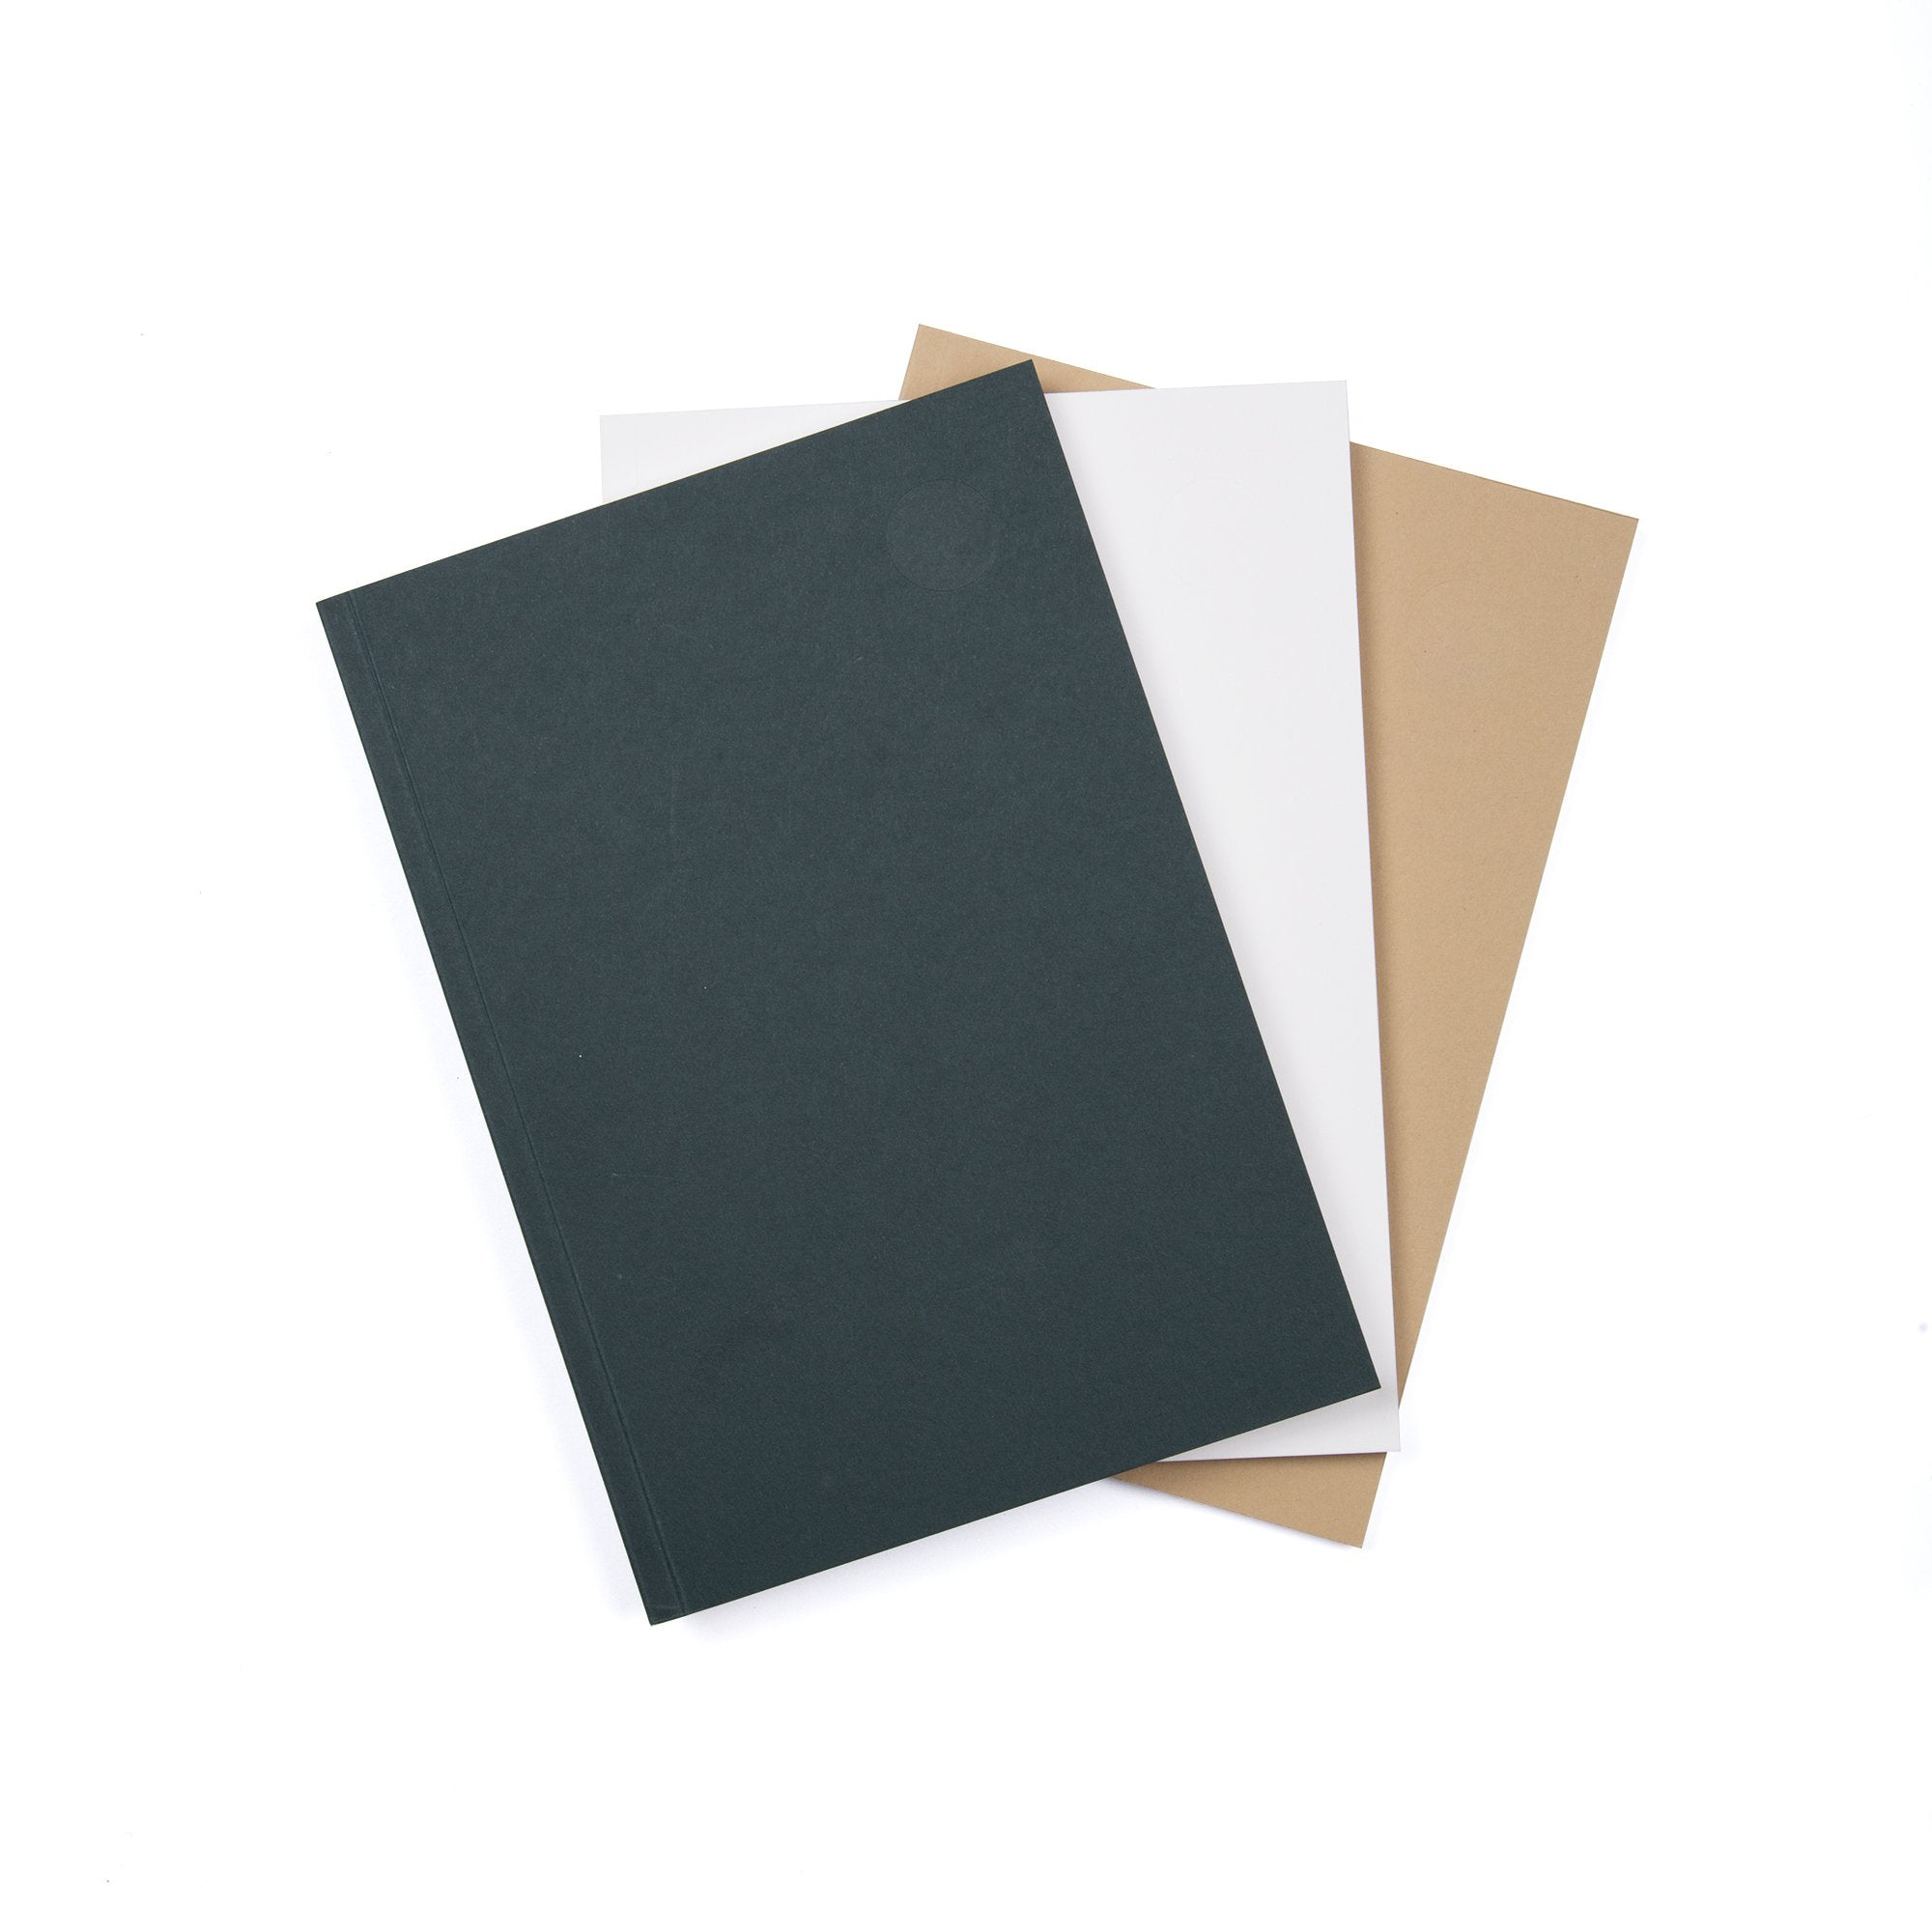 Iyouall - Set of 3 Design Notebooks - Blank